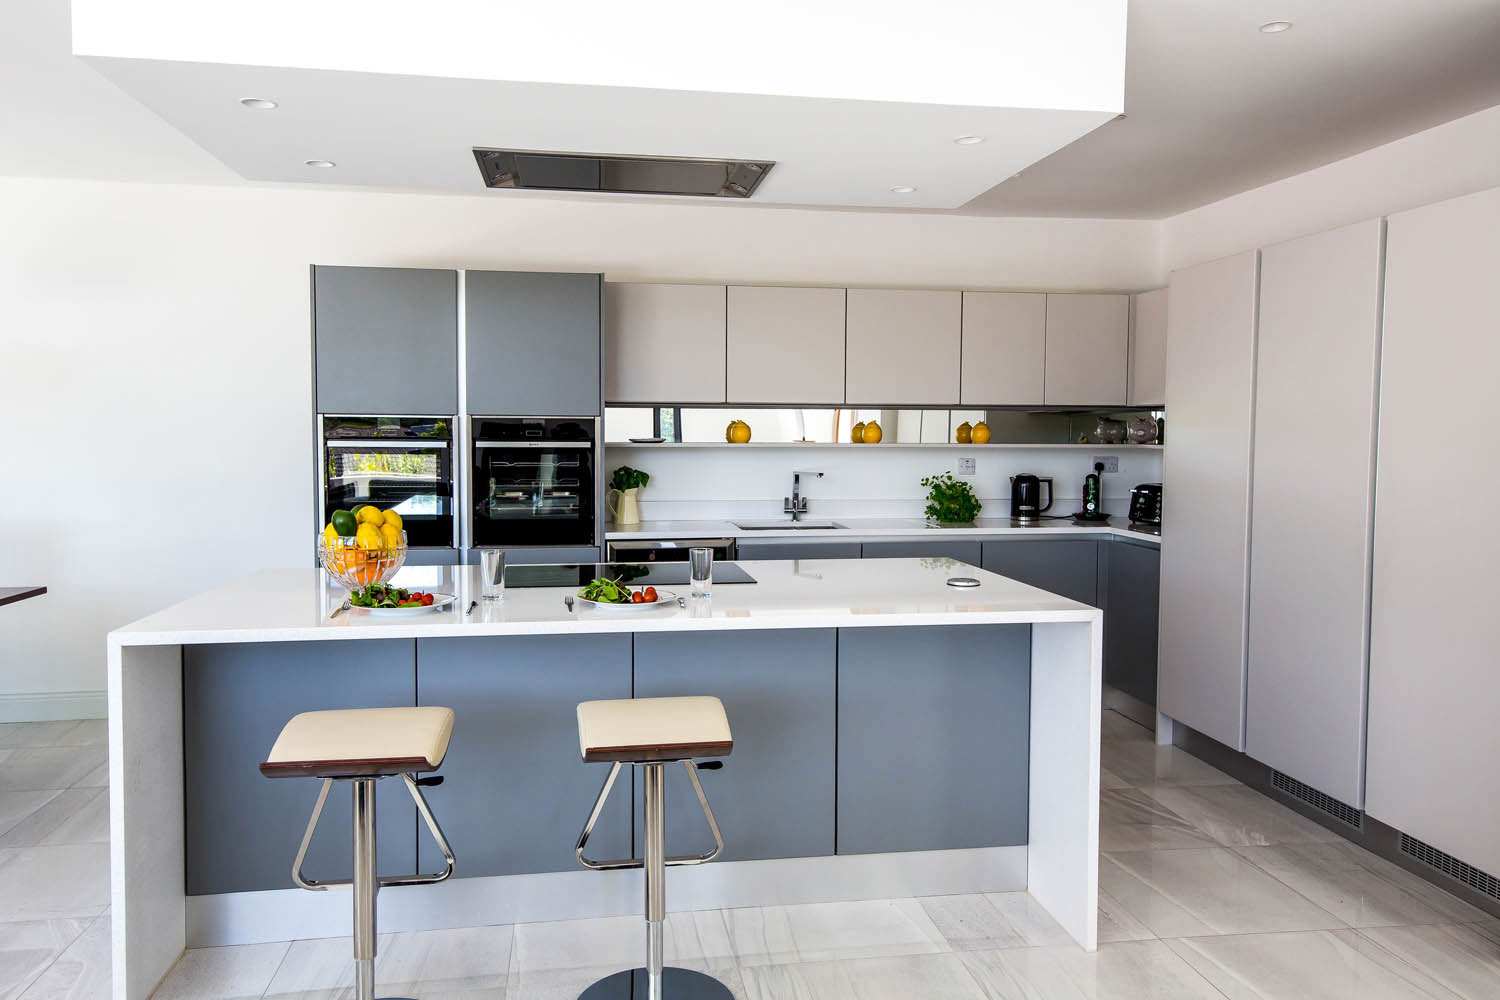 Kitchens Ireland, Kitchen Direct Ireland, Dublin, Cork, Galway